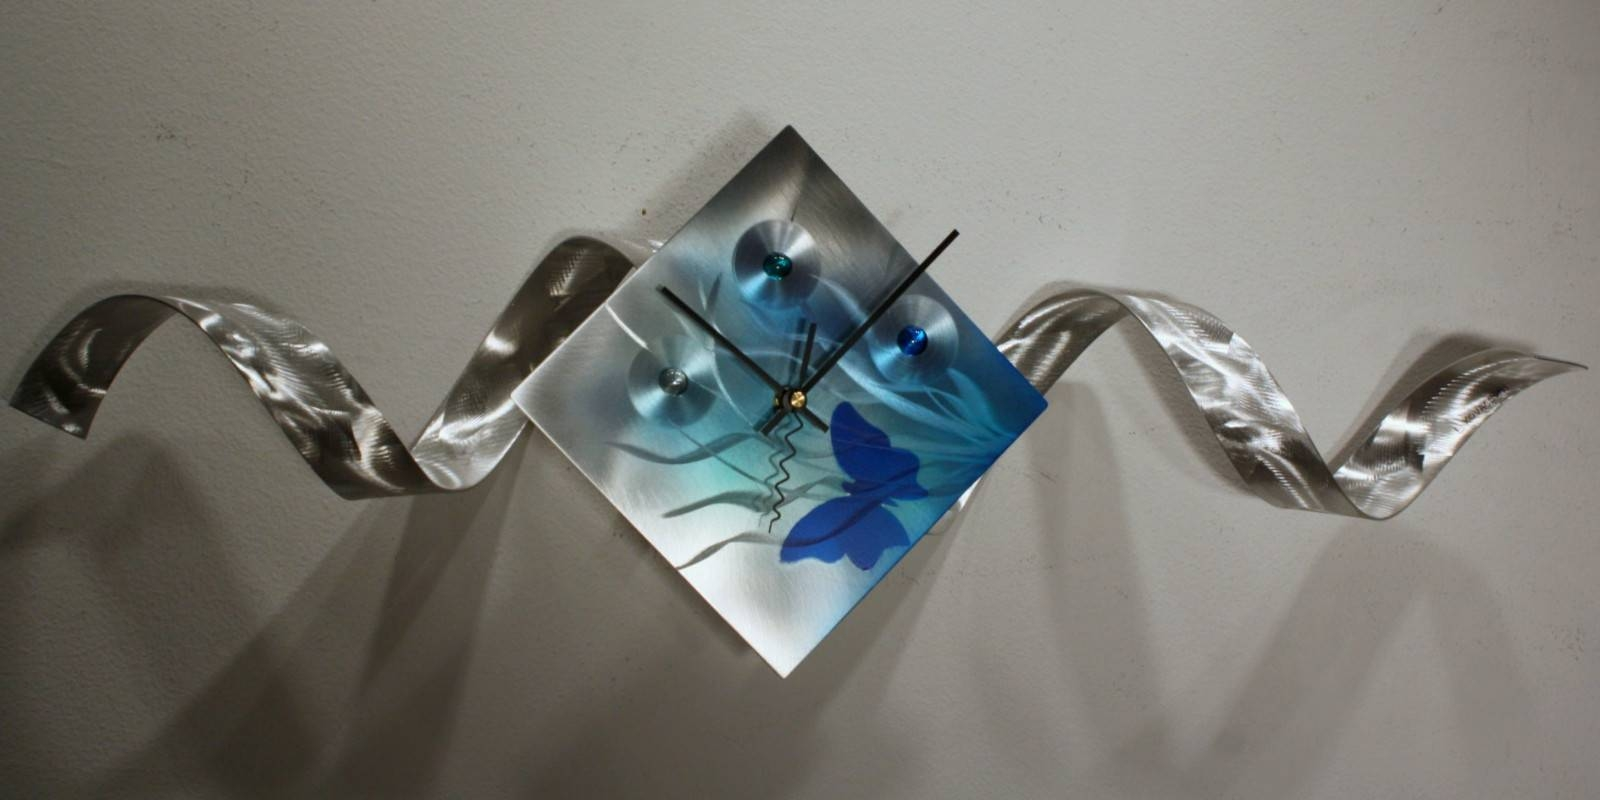 Trendy Set Metal Wall Art With Set Metal Wall Art Decorwith Regarding Most Up To Date Metal Wall Art Decor And Sculptures (View 17 of 20)